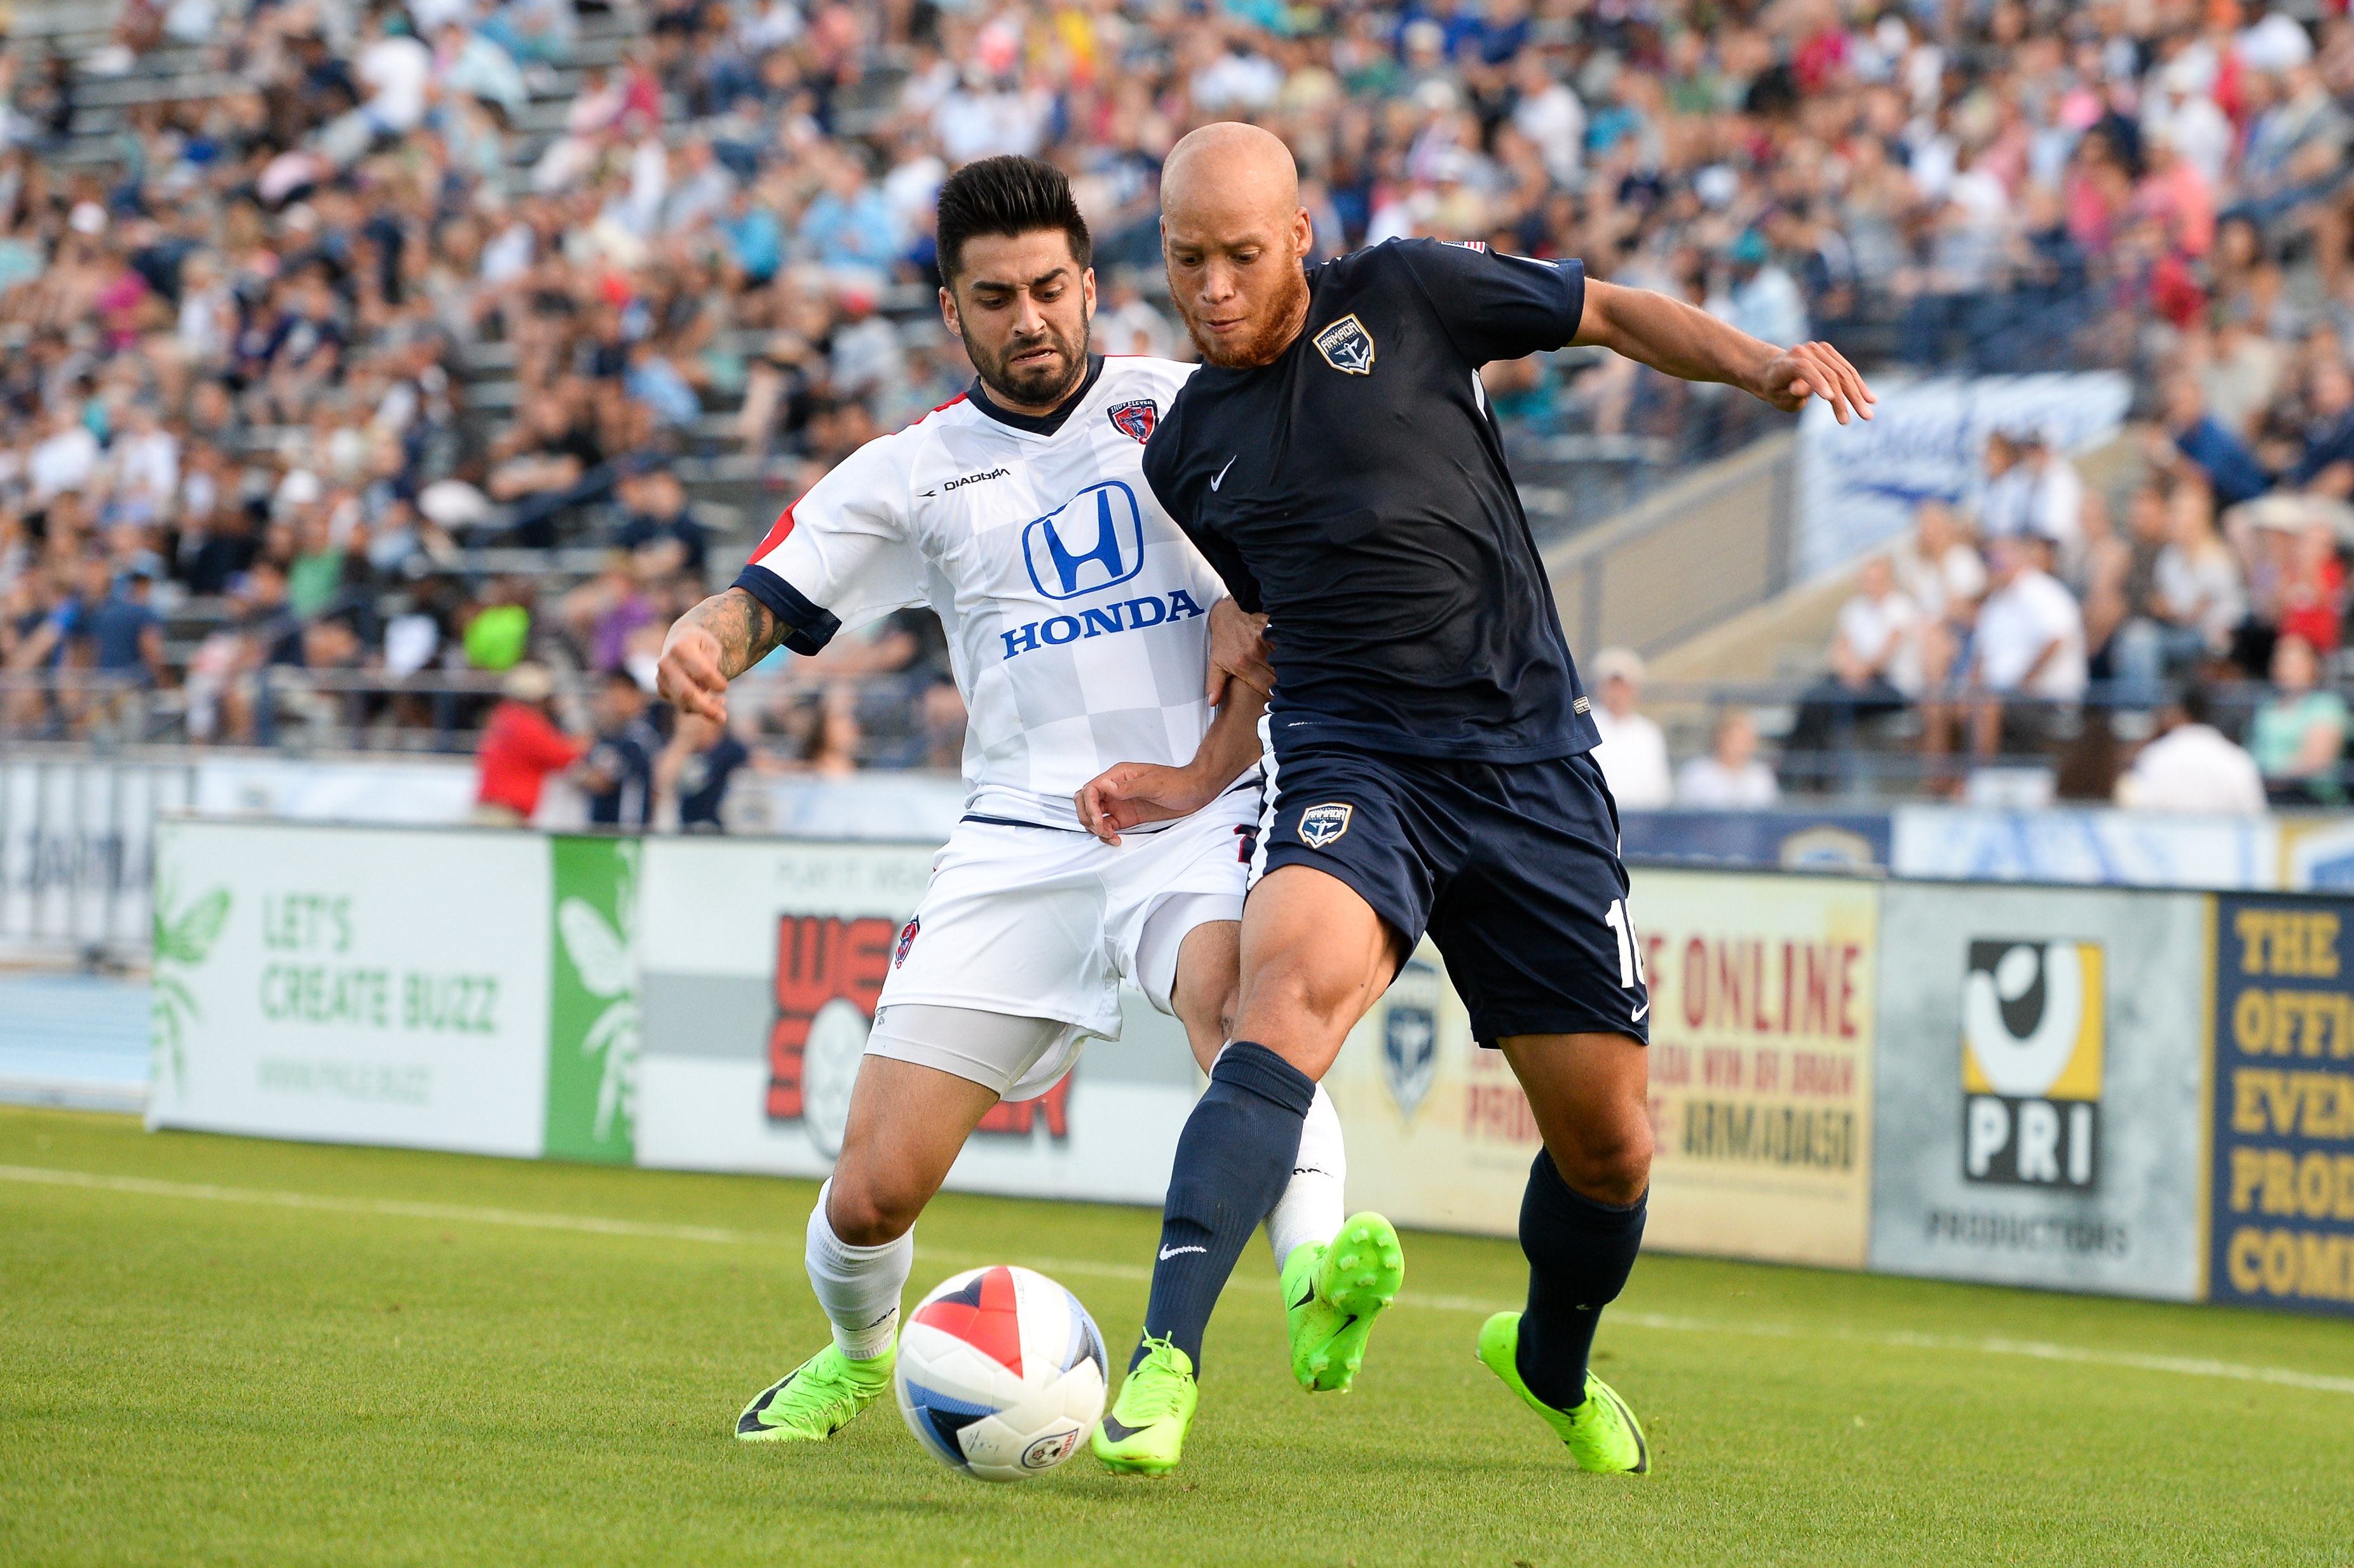 Soccer league cancels 2018 season, Jacksonville Armada to play in different league